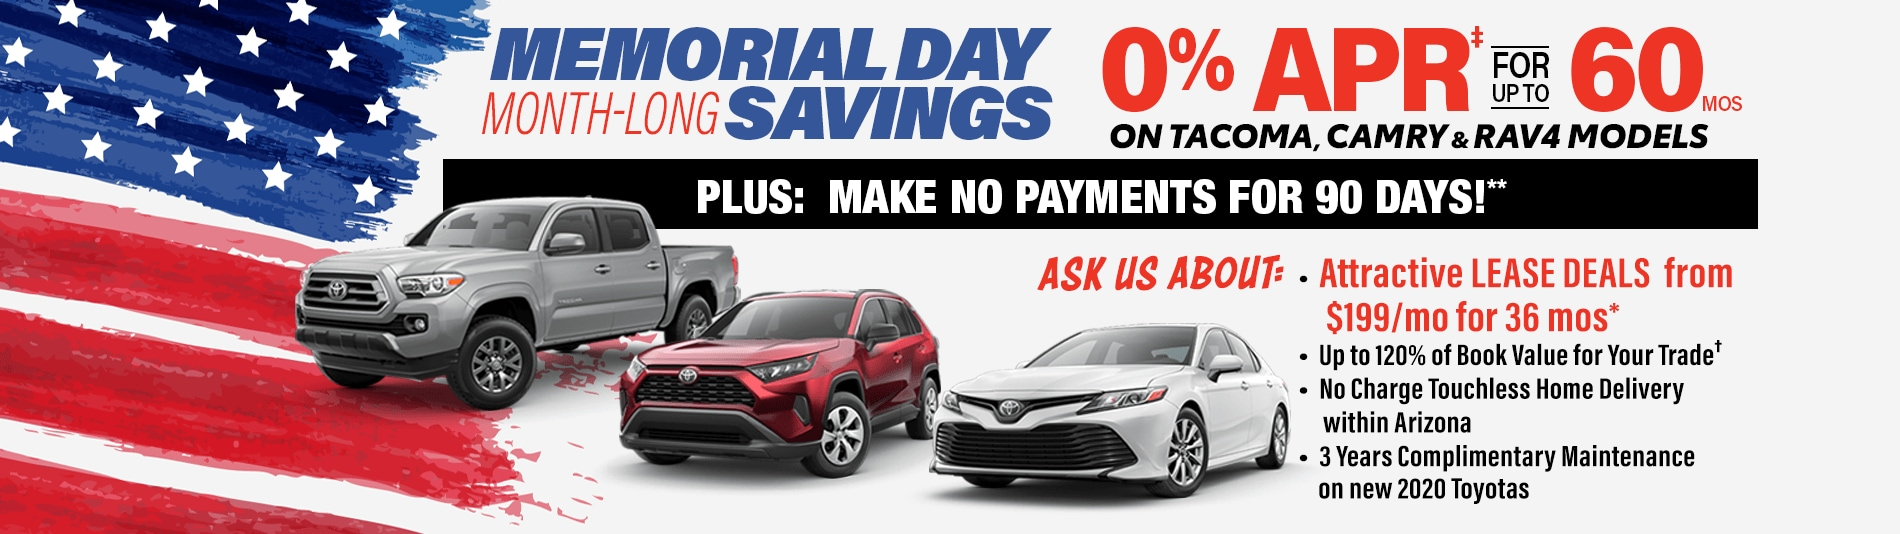 0% APR for 60 months on 2020 Tacoma, Camry, RAV4 at Larry H. Miller Toyota Peoria